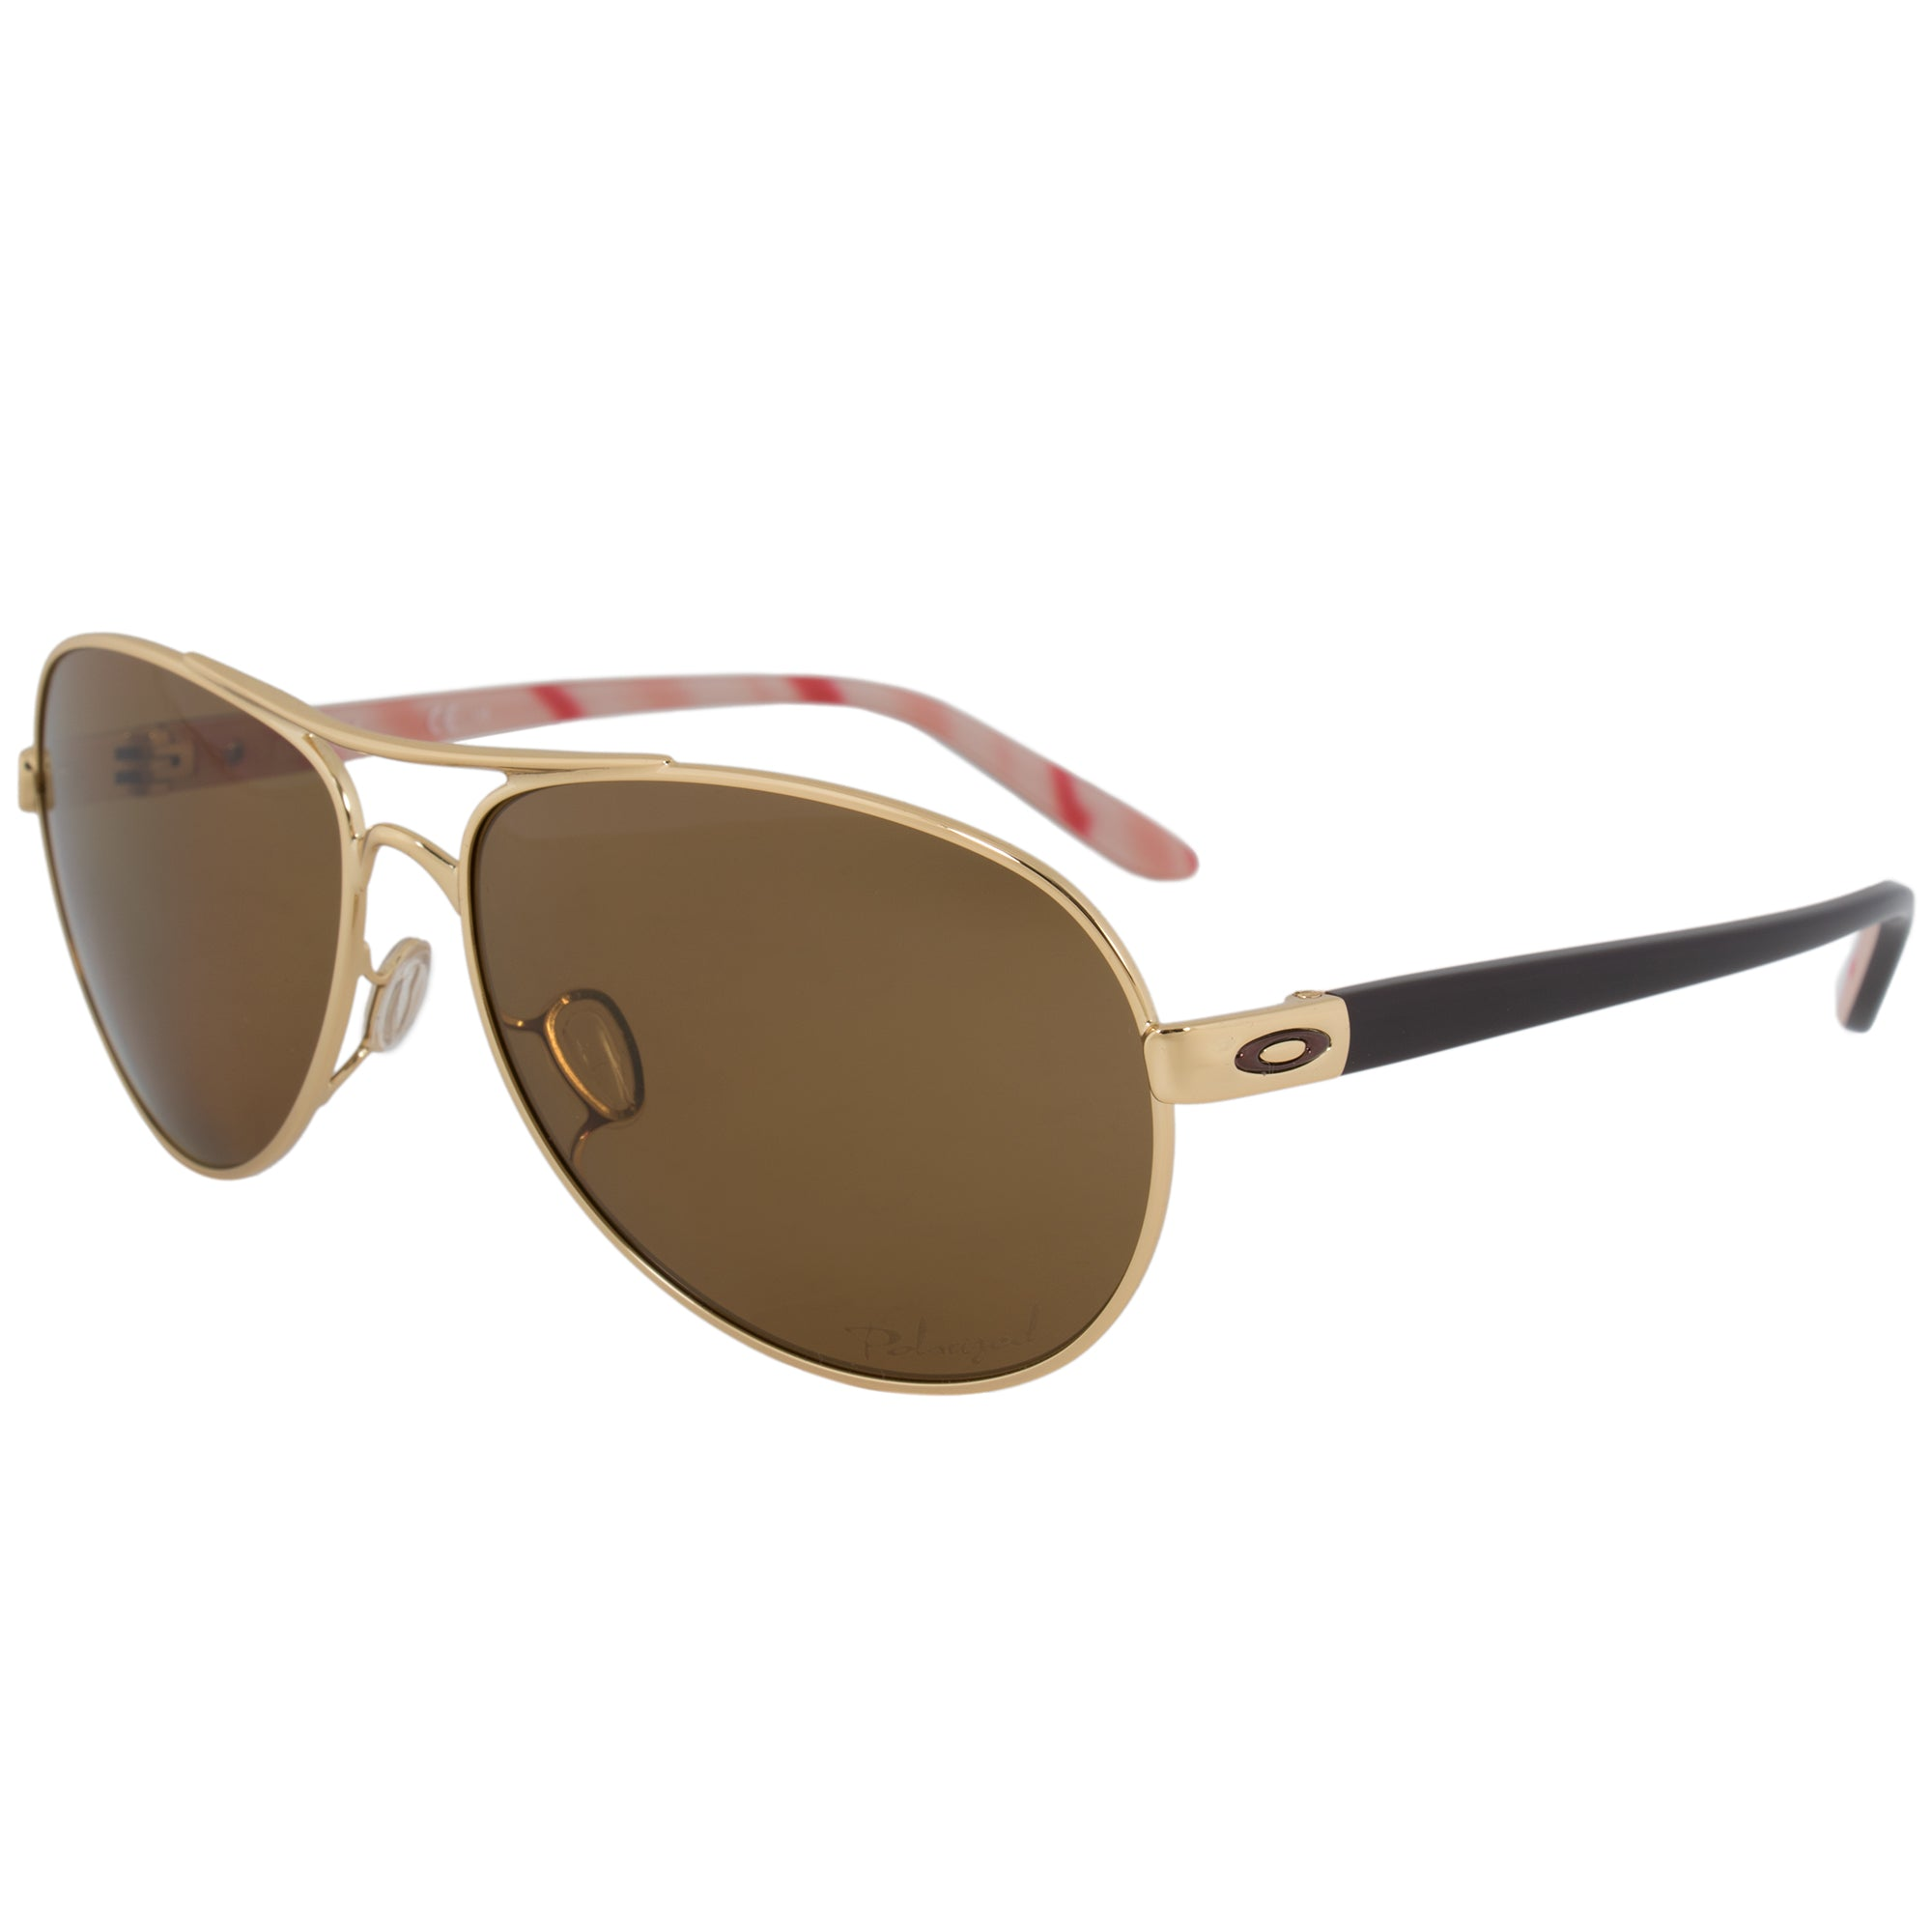 Oakley Feedback Pilot Sunglasses 0OO4079 407908 59 POL | Gold Frame | Polarized Brown Lenses